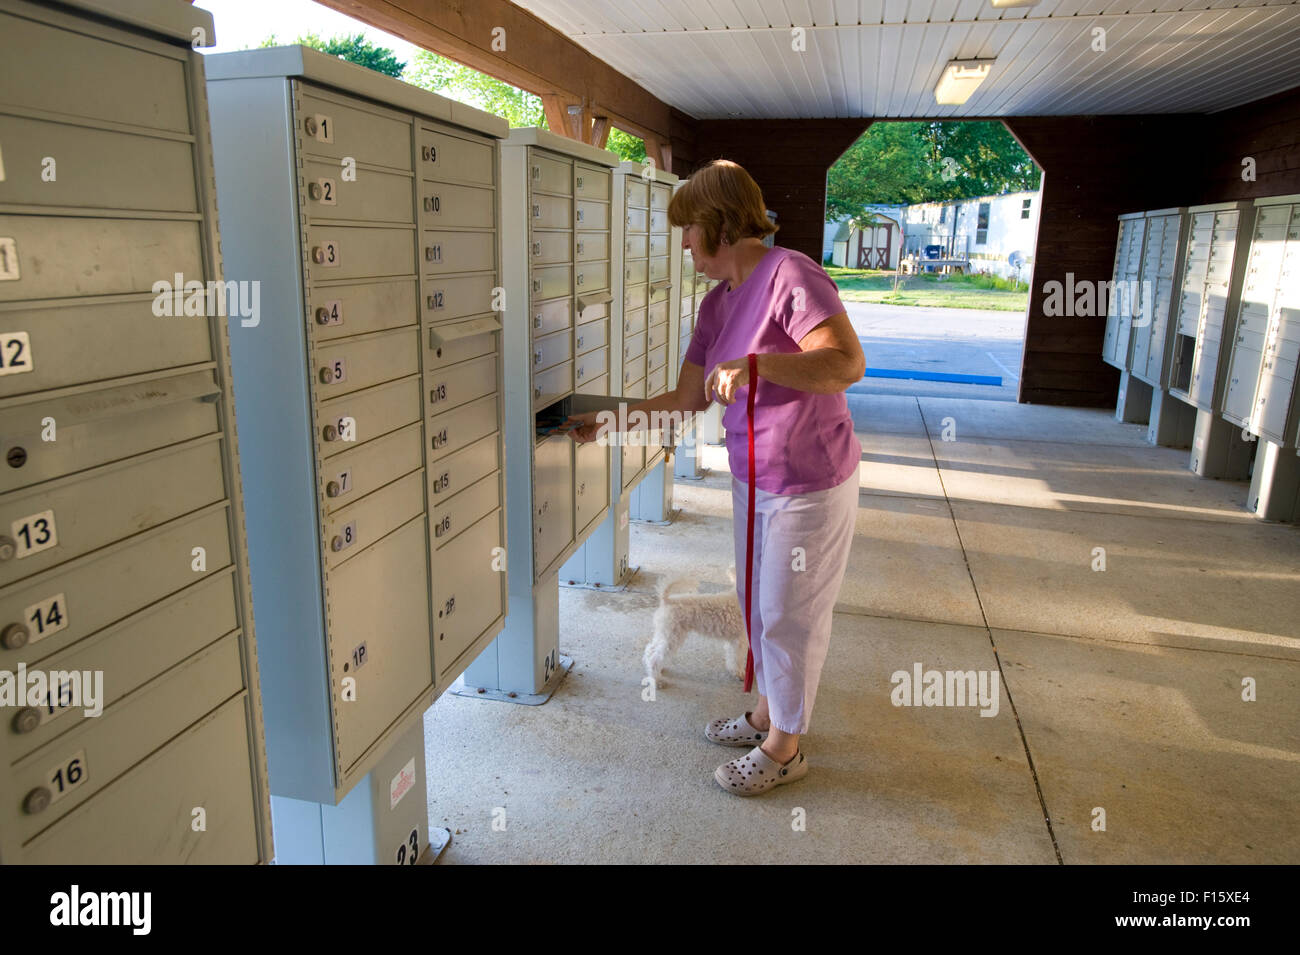 Middle aged woman getting mail from apartment mailboxes Stock Photo ...